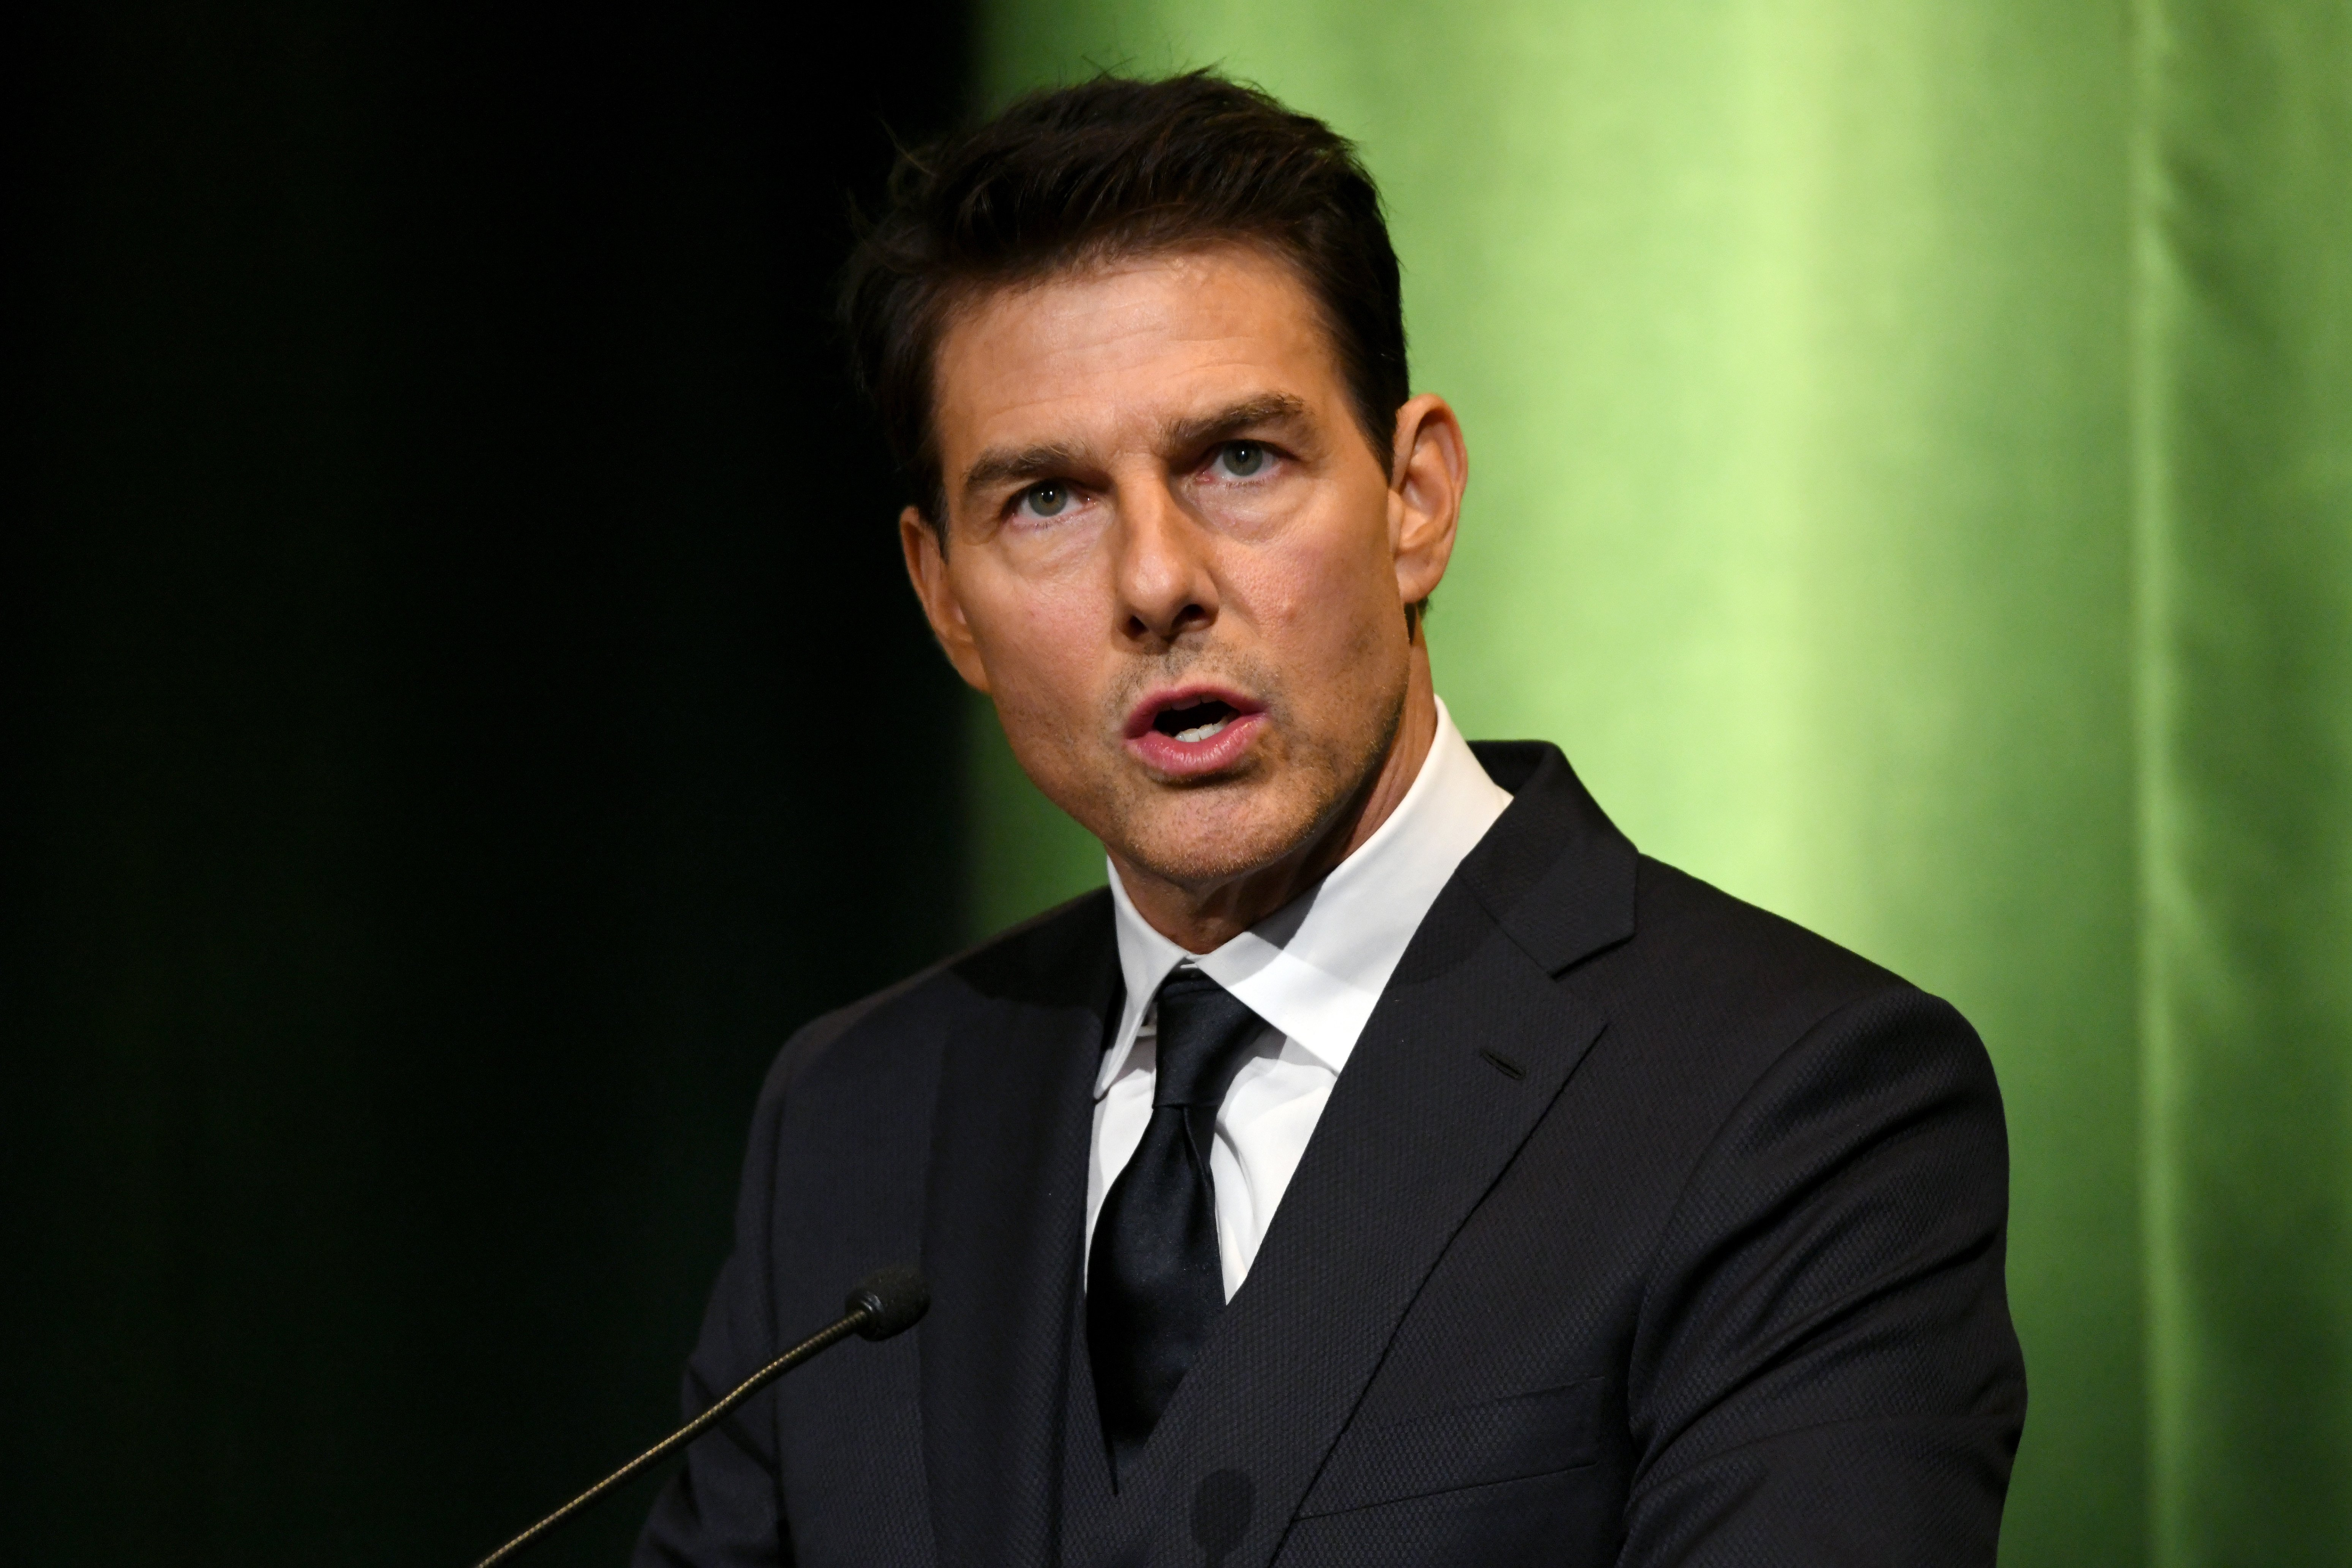 Tom Cruise speaks onstage during the 10th Annual Lumiere Awards on January 30, 2019, in Burbank. | Source: Getty Images.